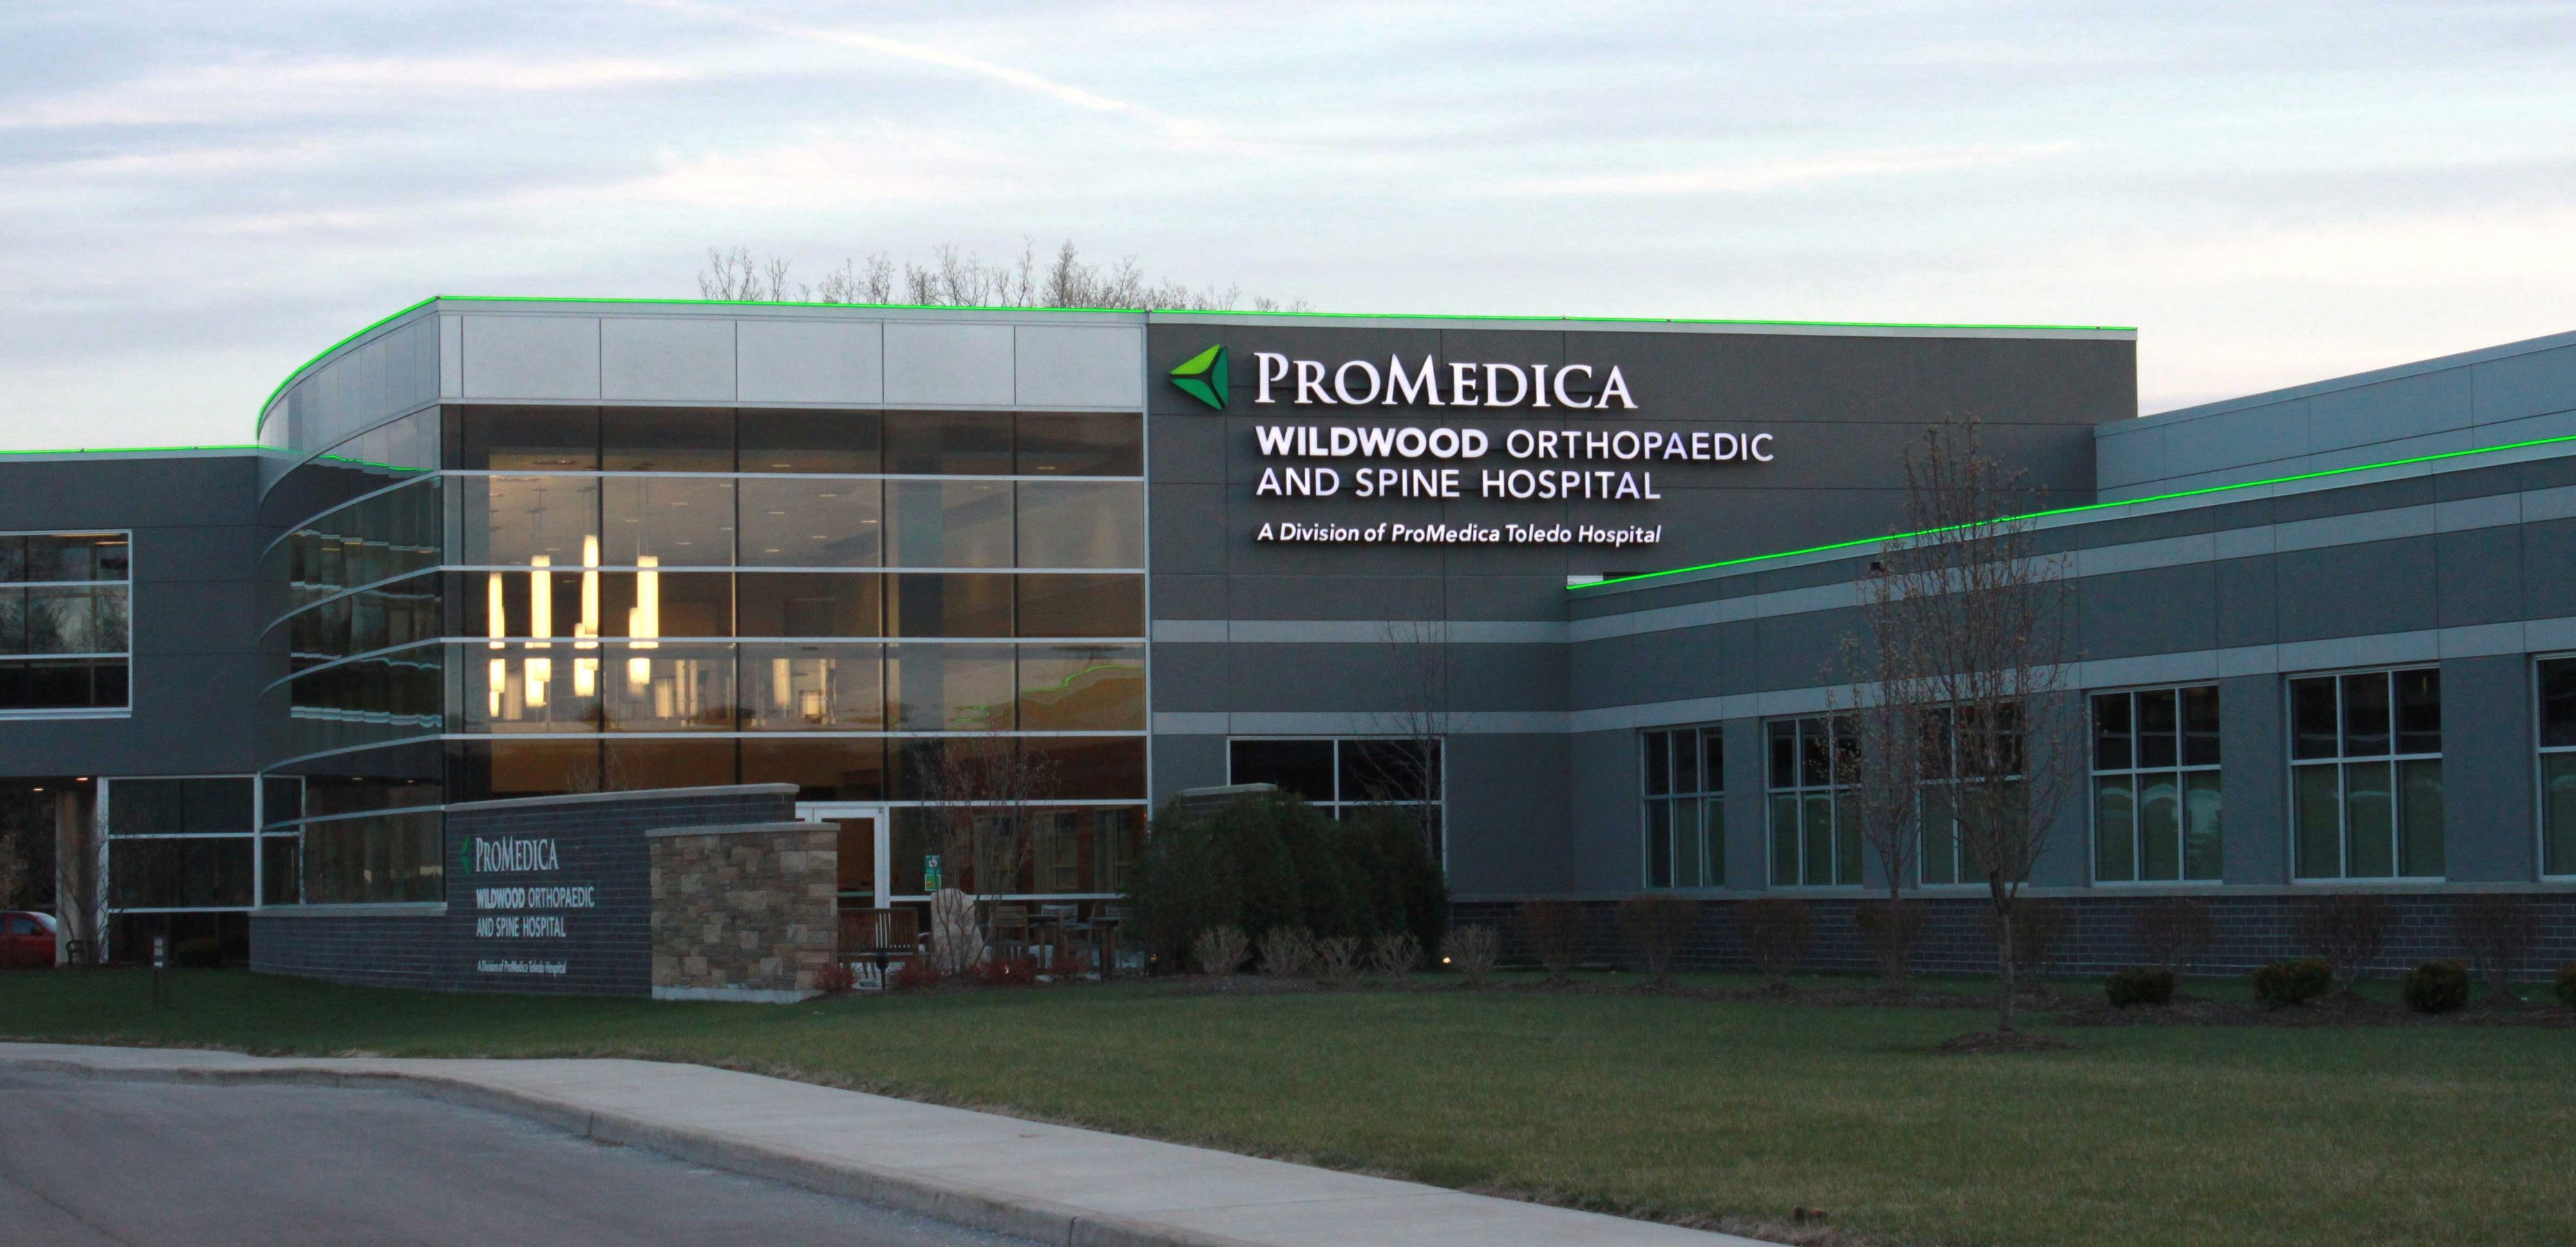 PROMEDICA WILDWOOD ORTHOPEDIC AND SPINE HOSPITAL